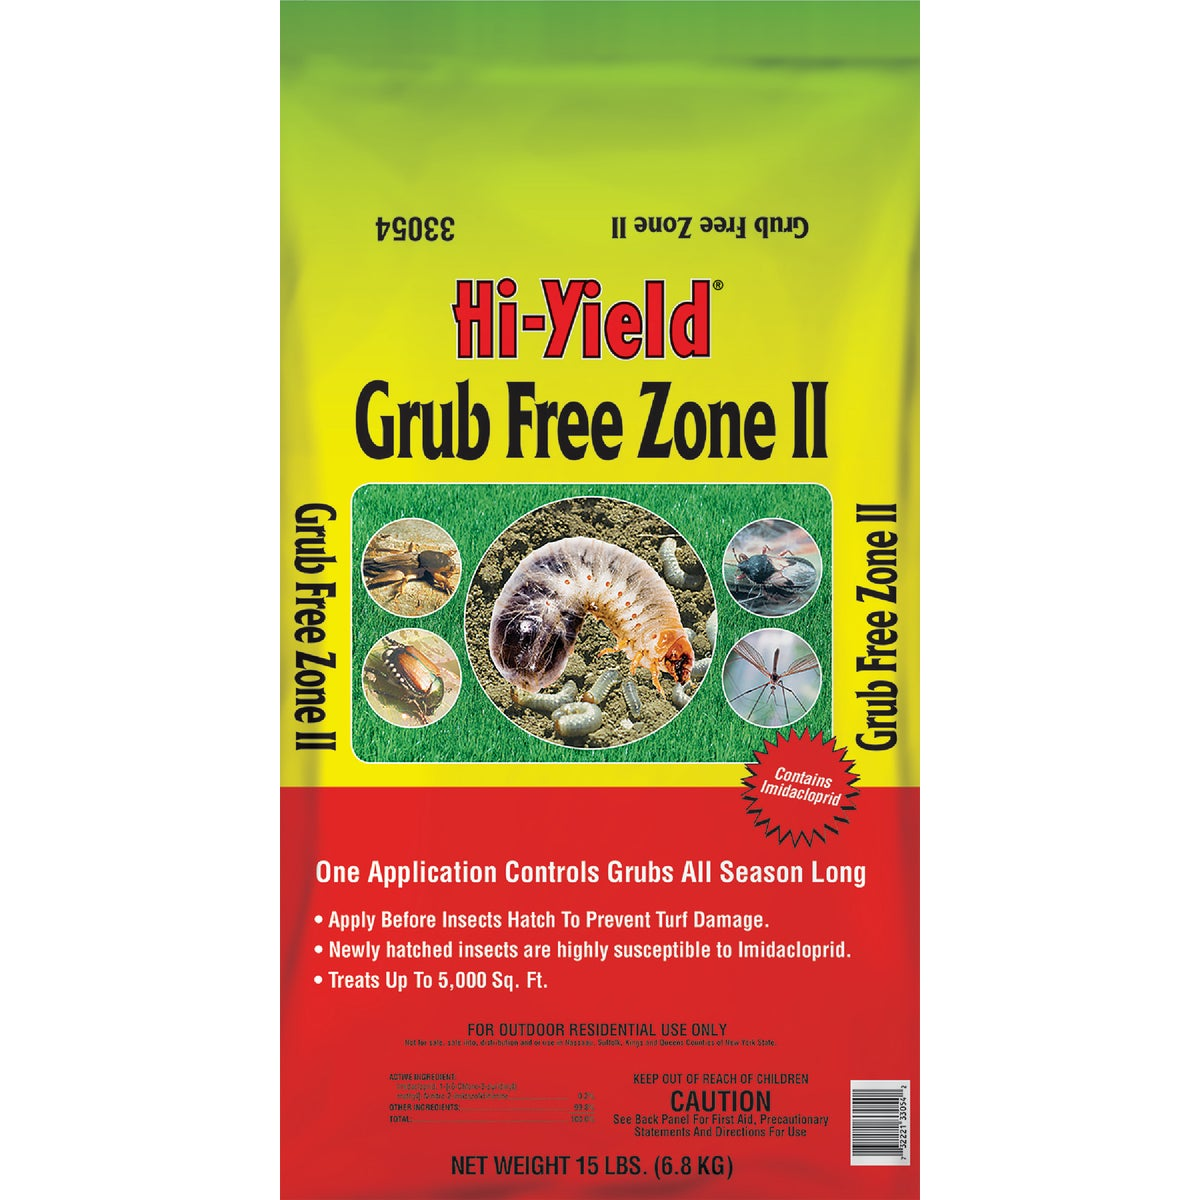 15LB GRUB FREE ZONE II - 33054 by Vpg Fertilome